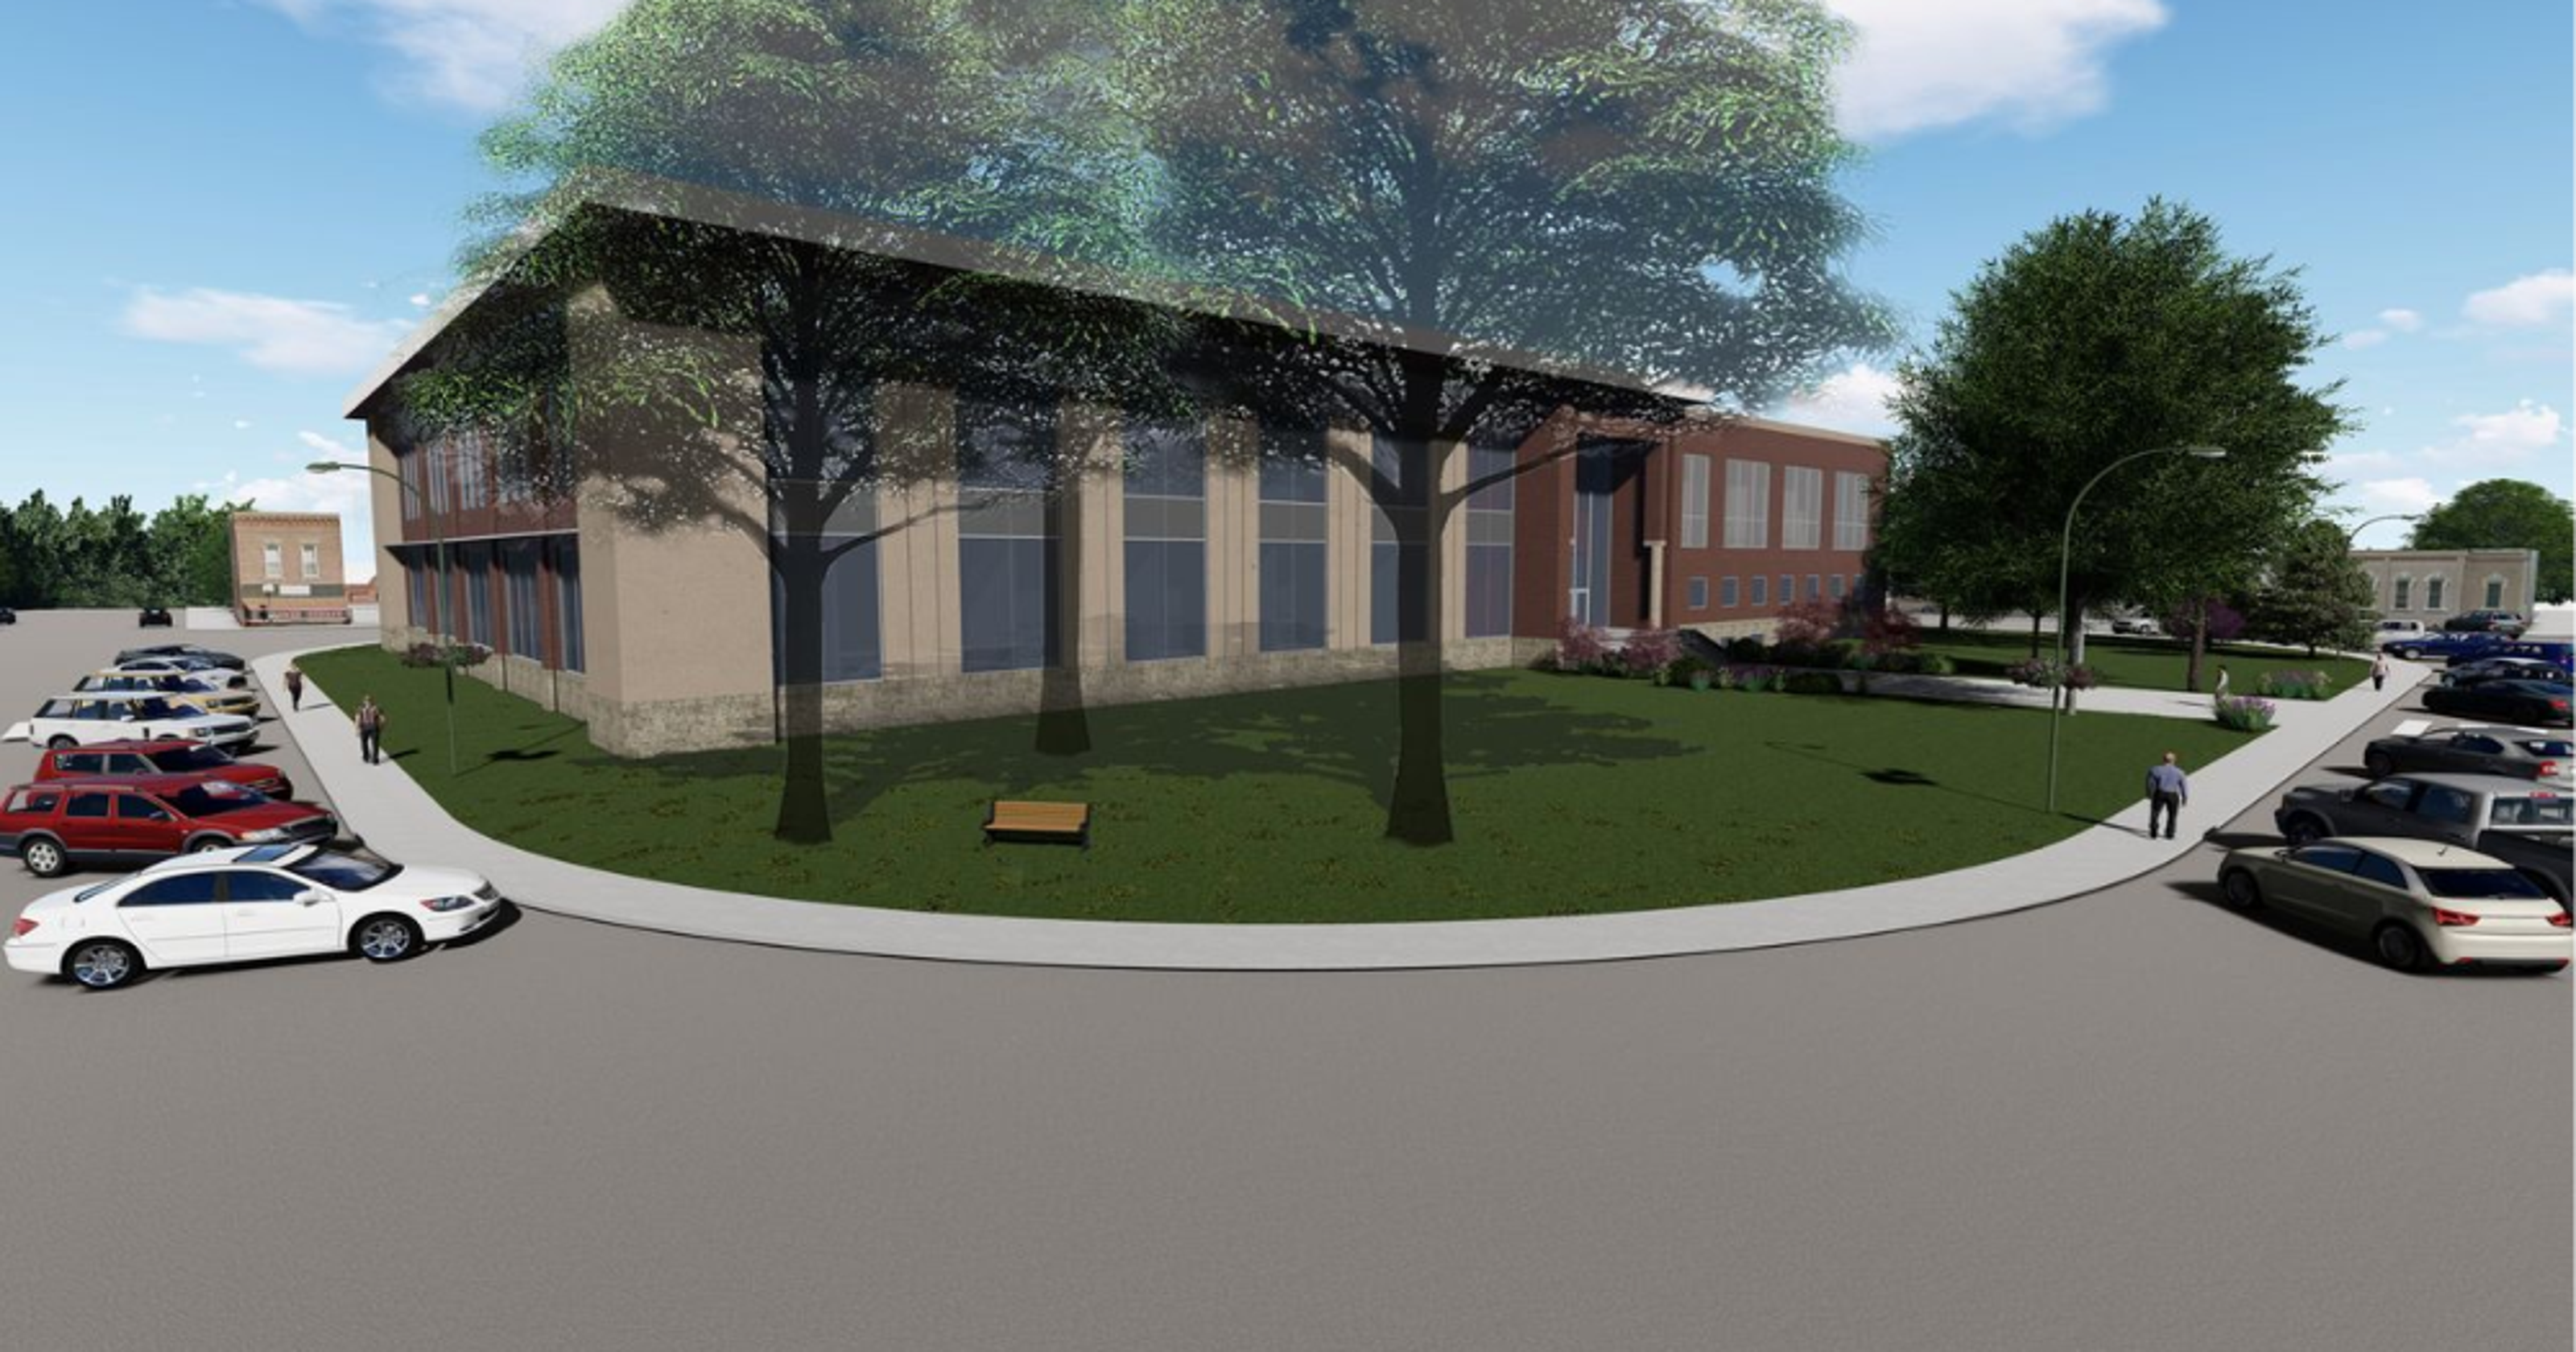 Warren County voters approve plans for new courthouse, jail